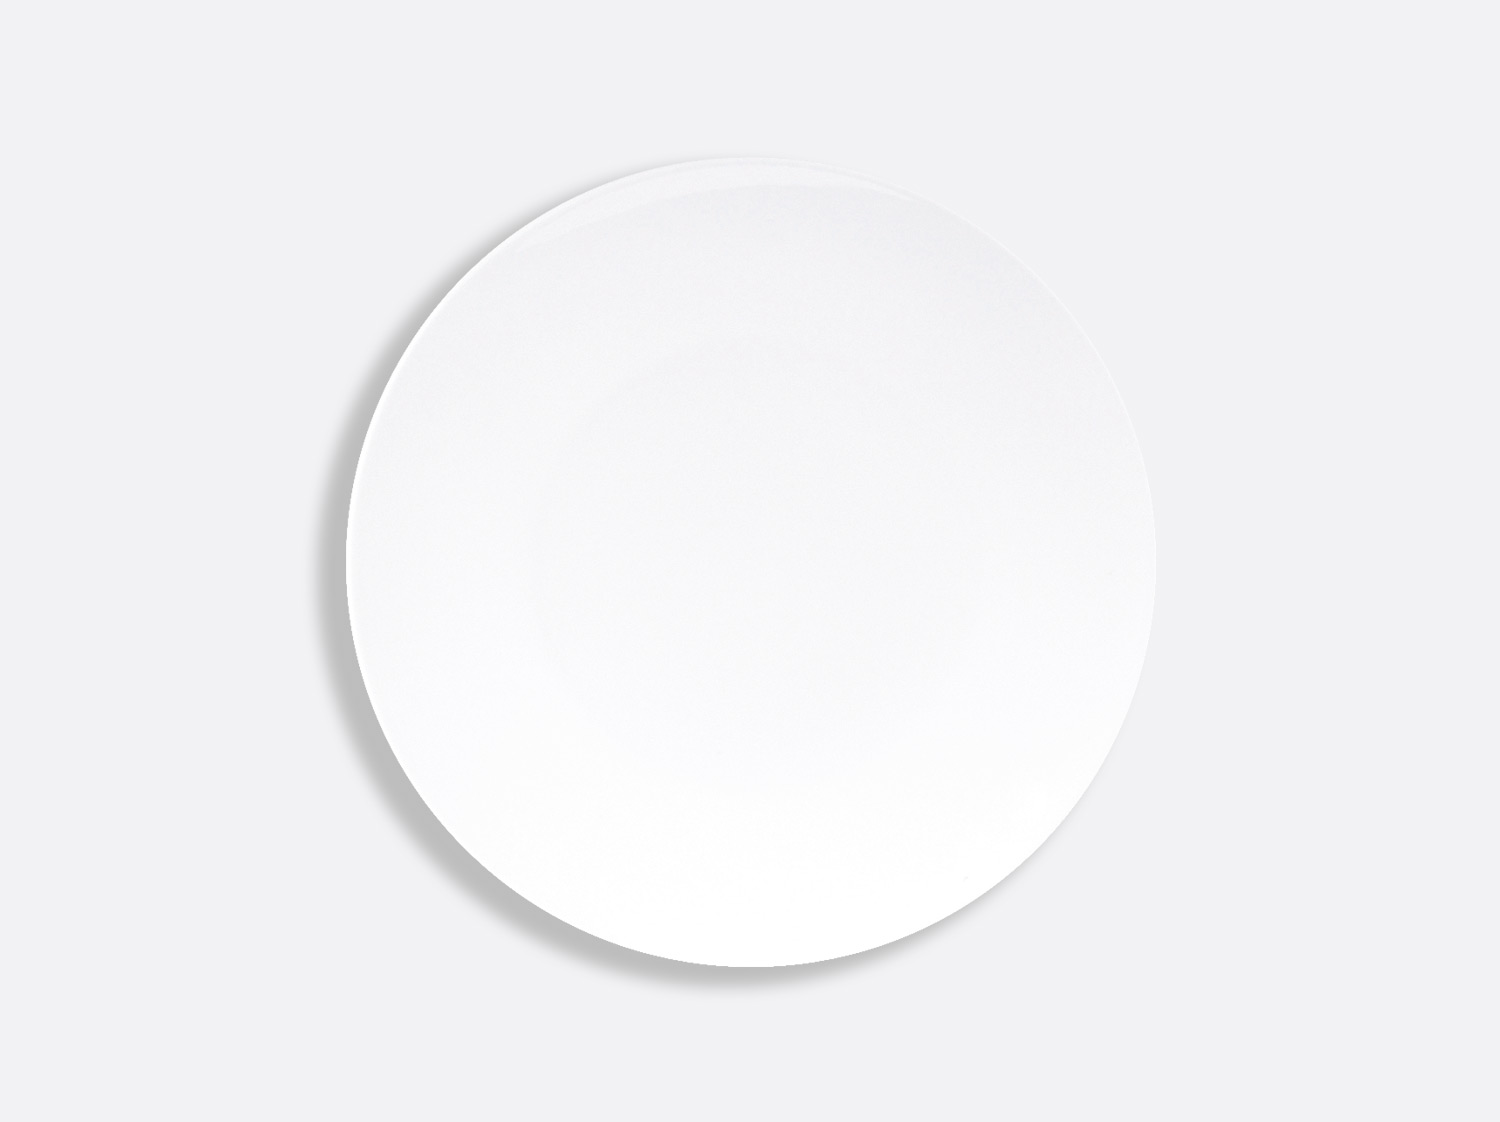 China Coupe plate 23.3 cm of the collection Domus blanc | Bernardaud